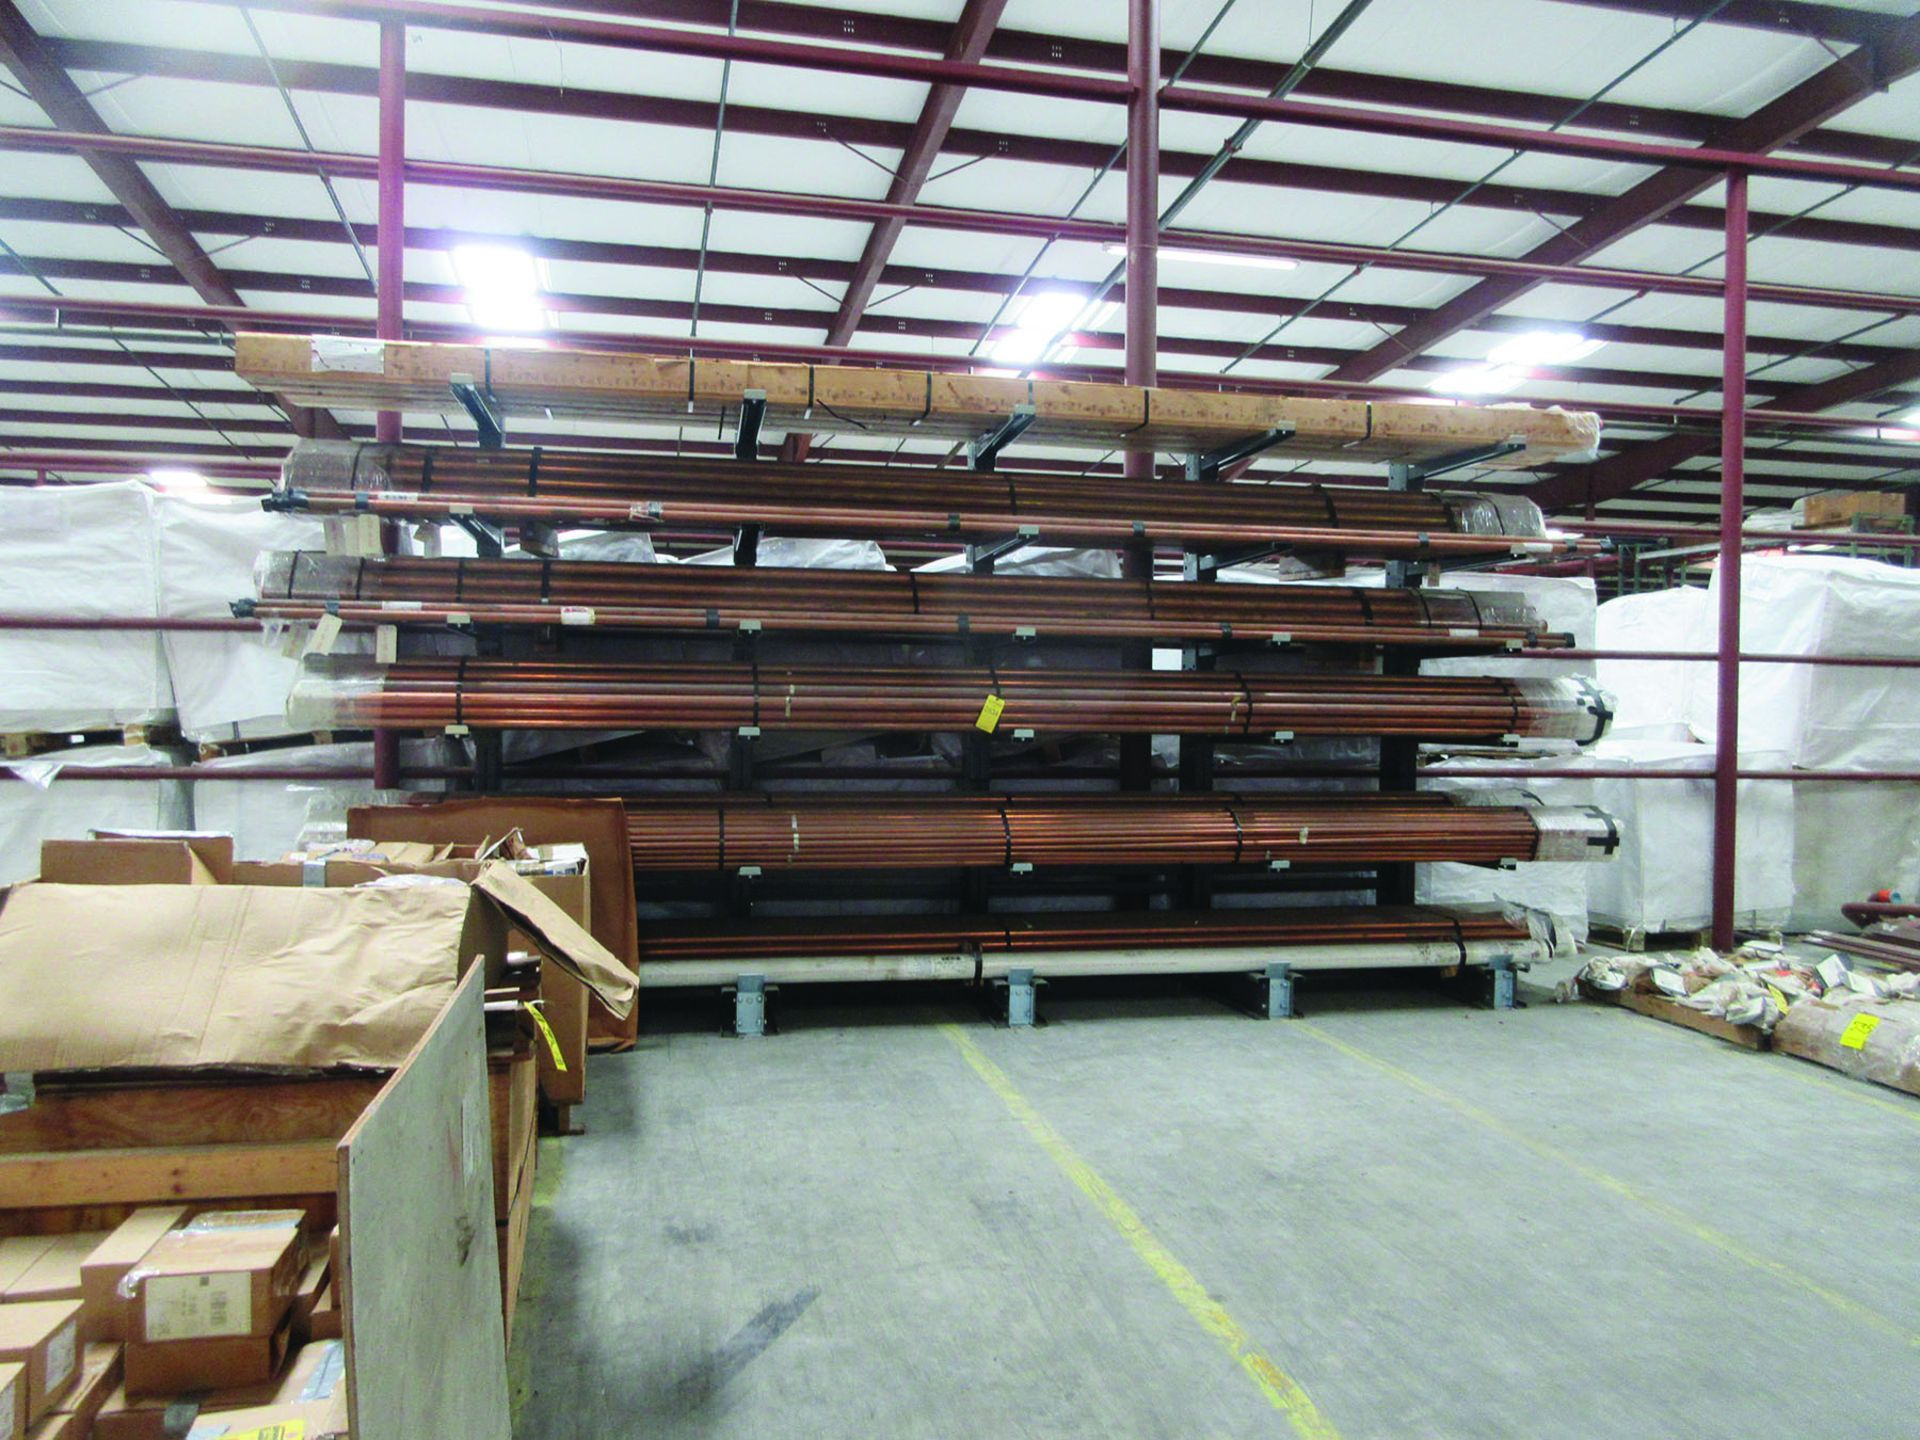 CANTILEVER RACK W/ CONTENT: 120'' X 48'' X 202'', BUNDLES OF COPPER PIPE; LARGER BUNDLES WEIGH 1,